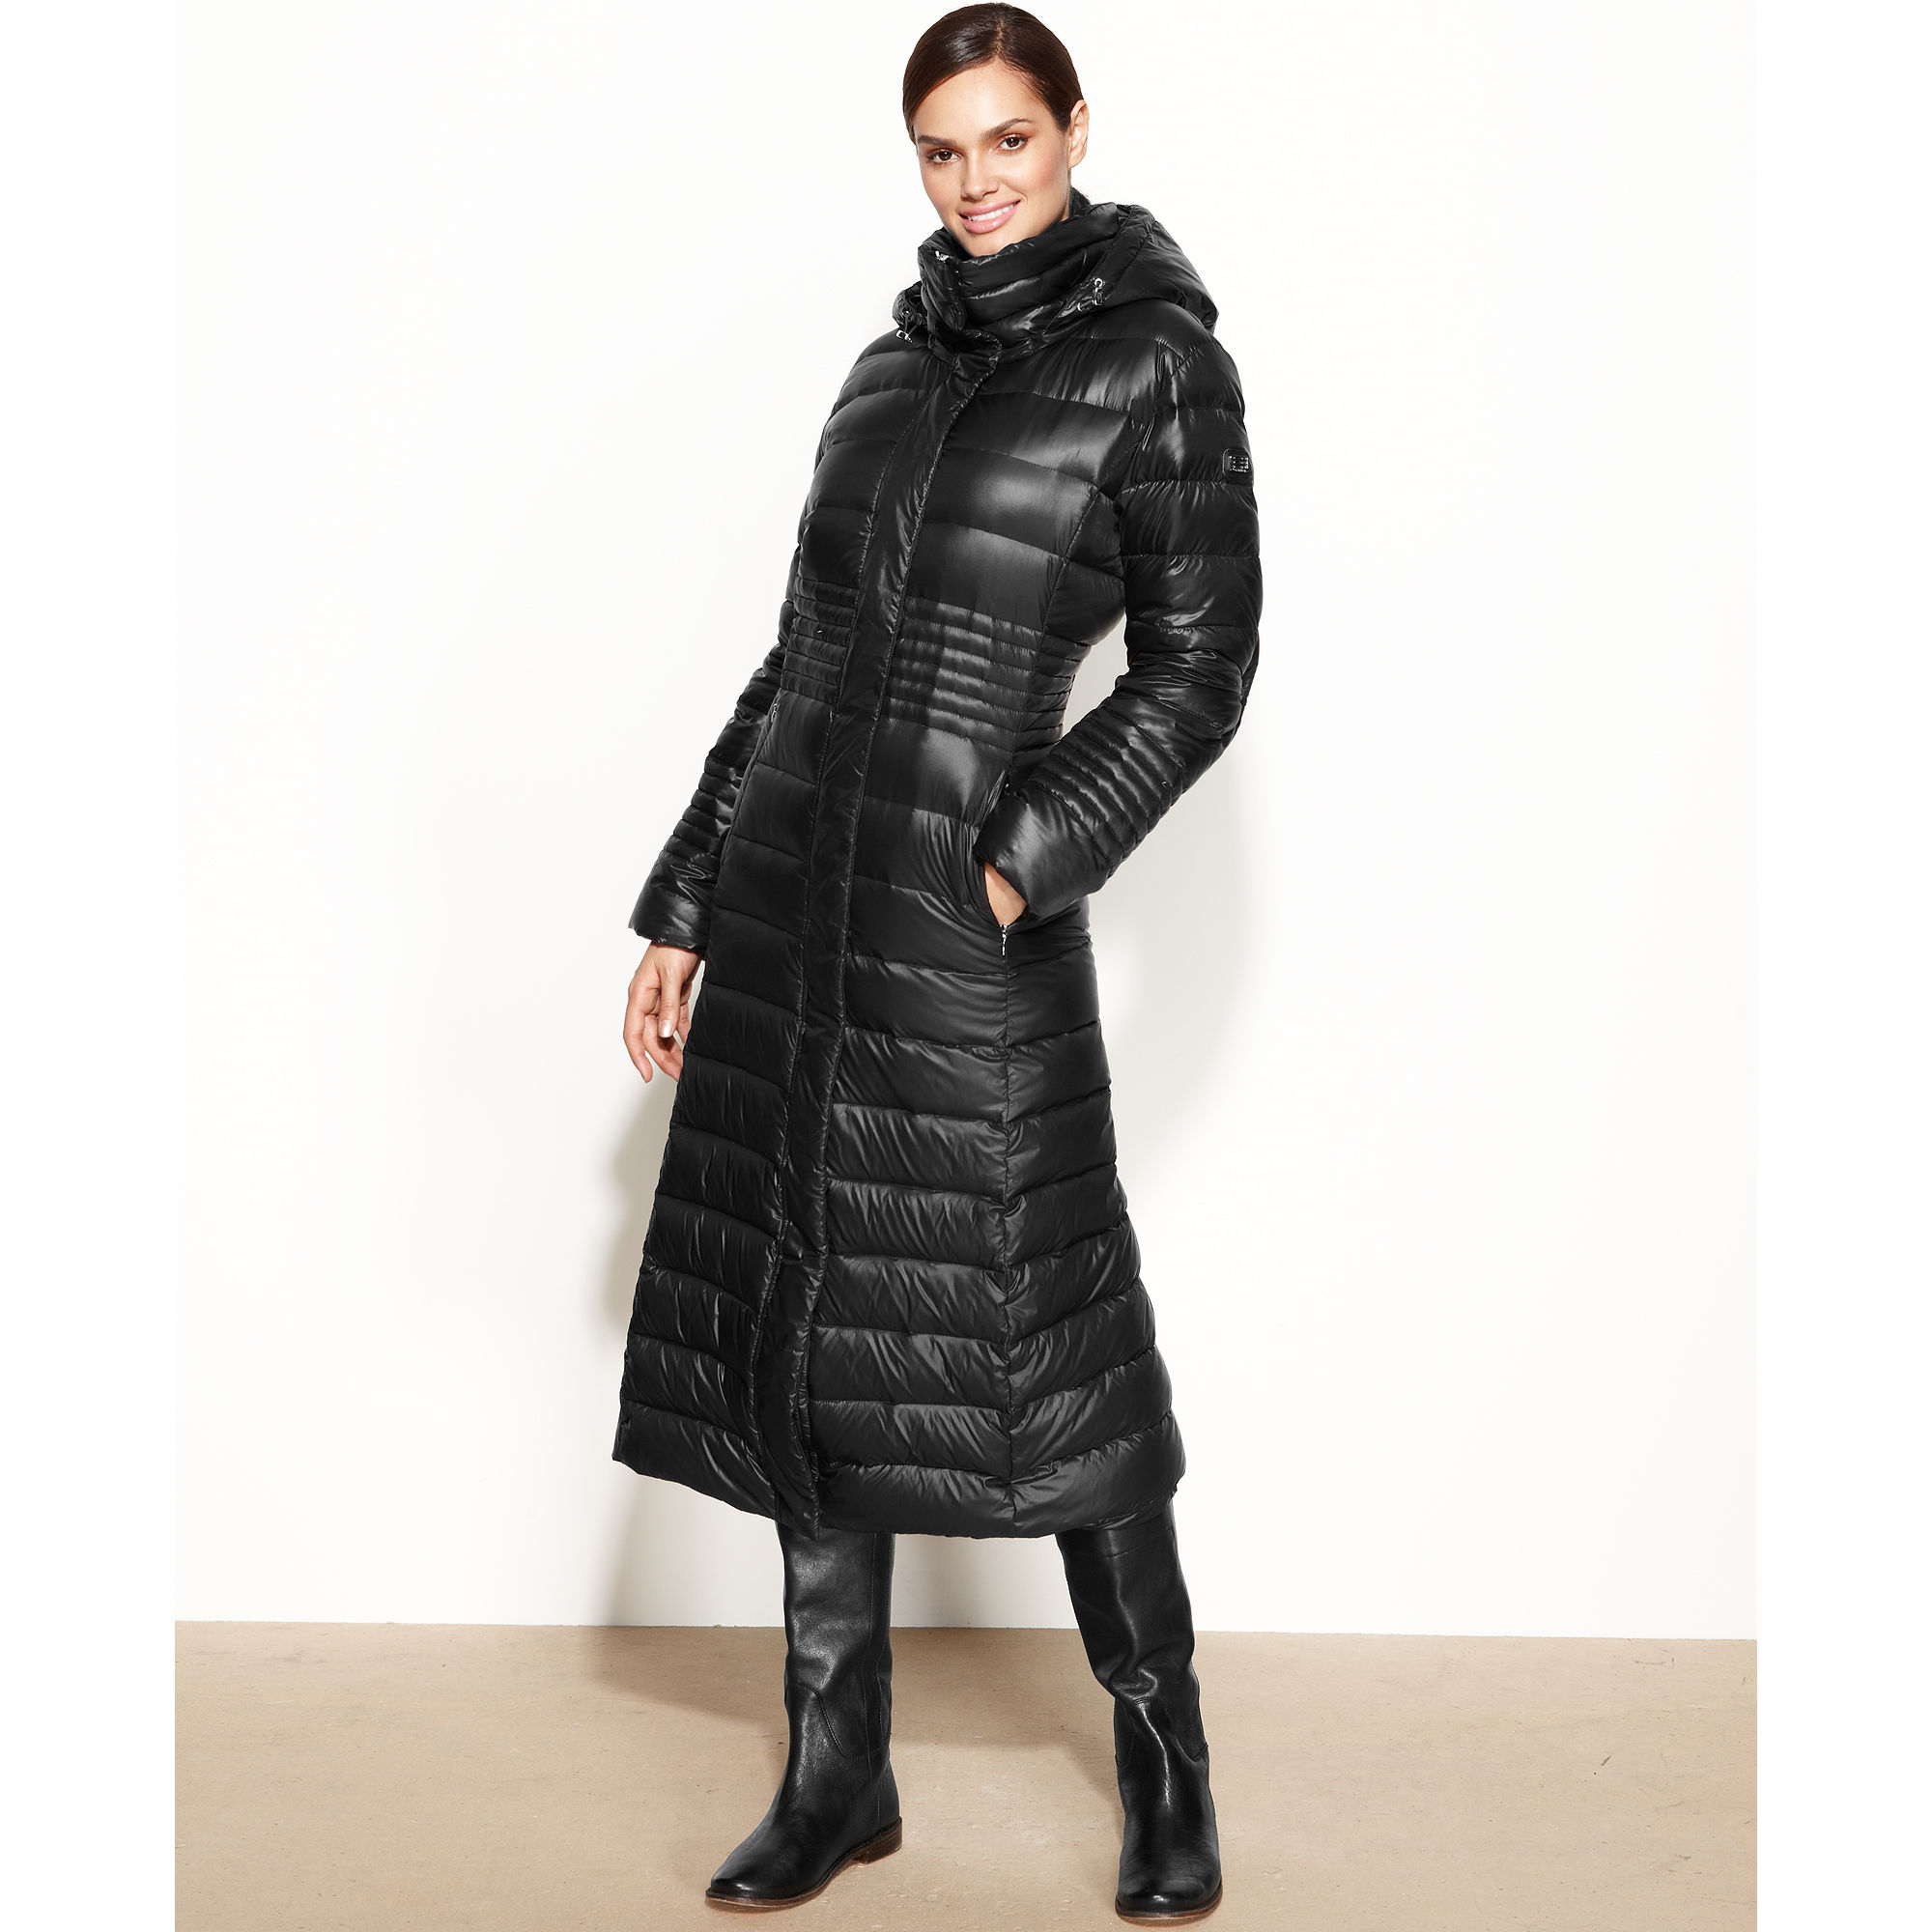 Find the best selection of cheap maxi wool coats women in bulk here at it24-ieop.gq Including black down coats women fur and cashmere coat women s jackets at wholesale prices from maxi wool coats women manufacturers. Source discount and high quality products in hundreds of categories wholesale direct from China.